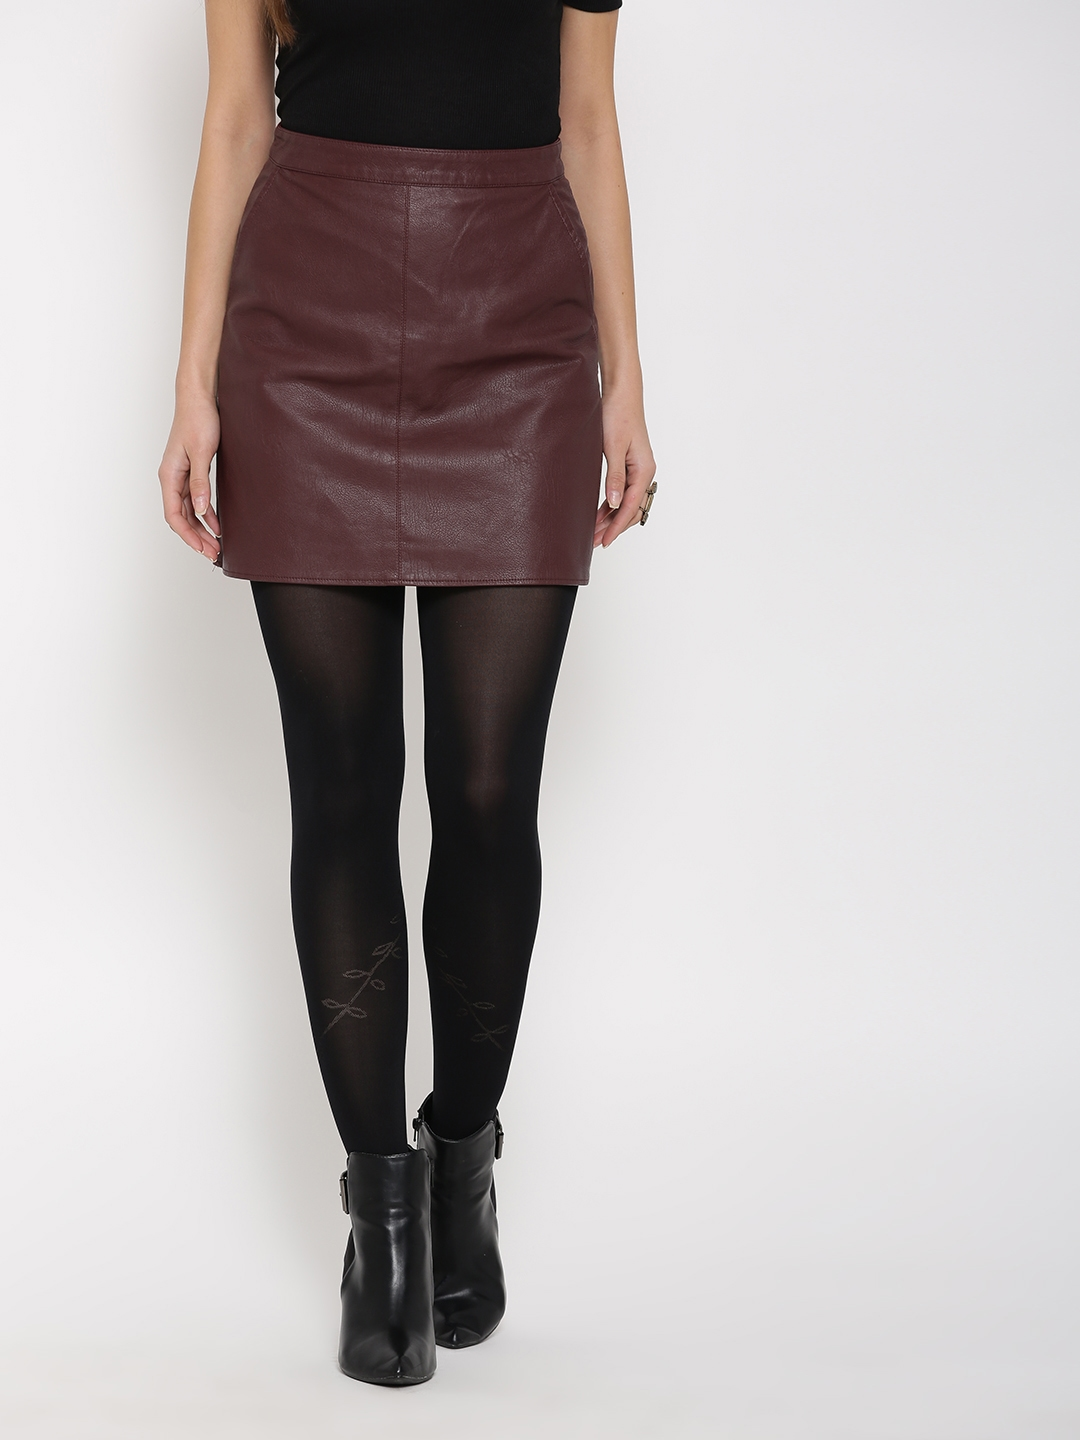 Buy FOREVER 21 Burgundy Faux Leather A Line Mini Skirt - Skirts ...